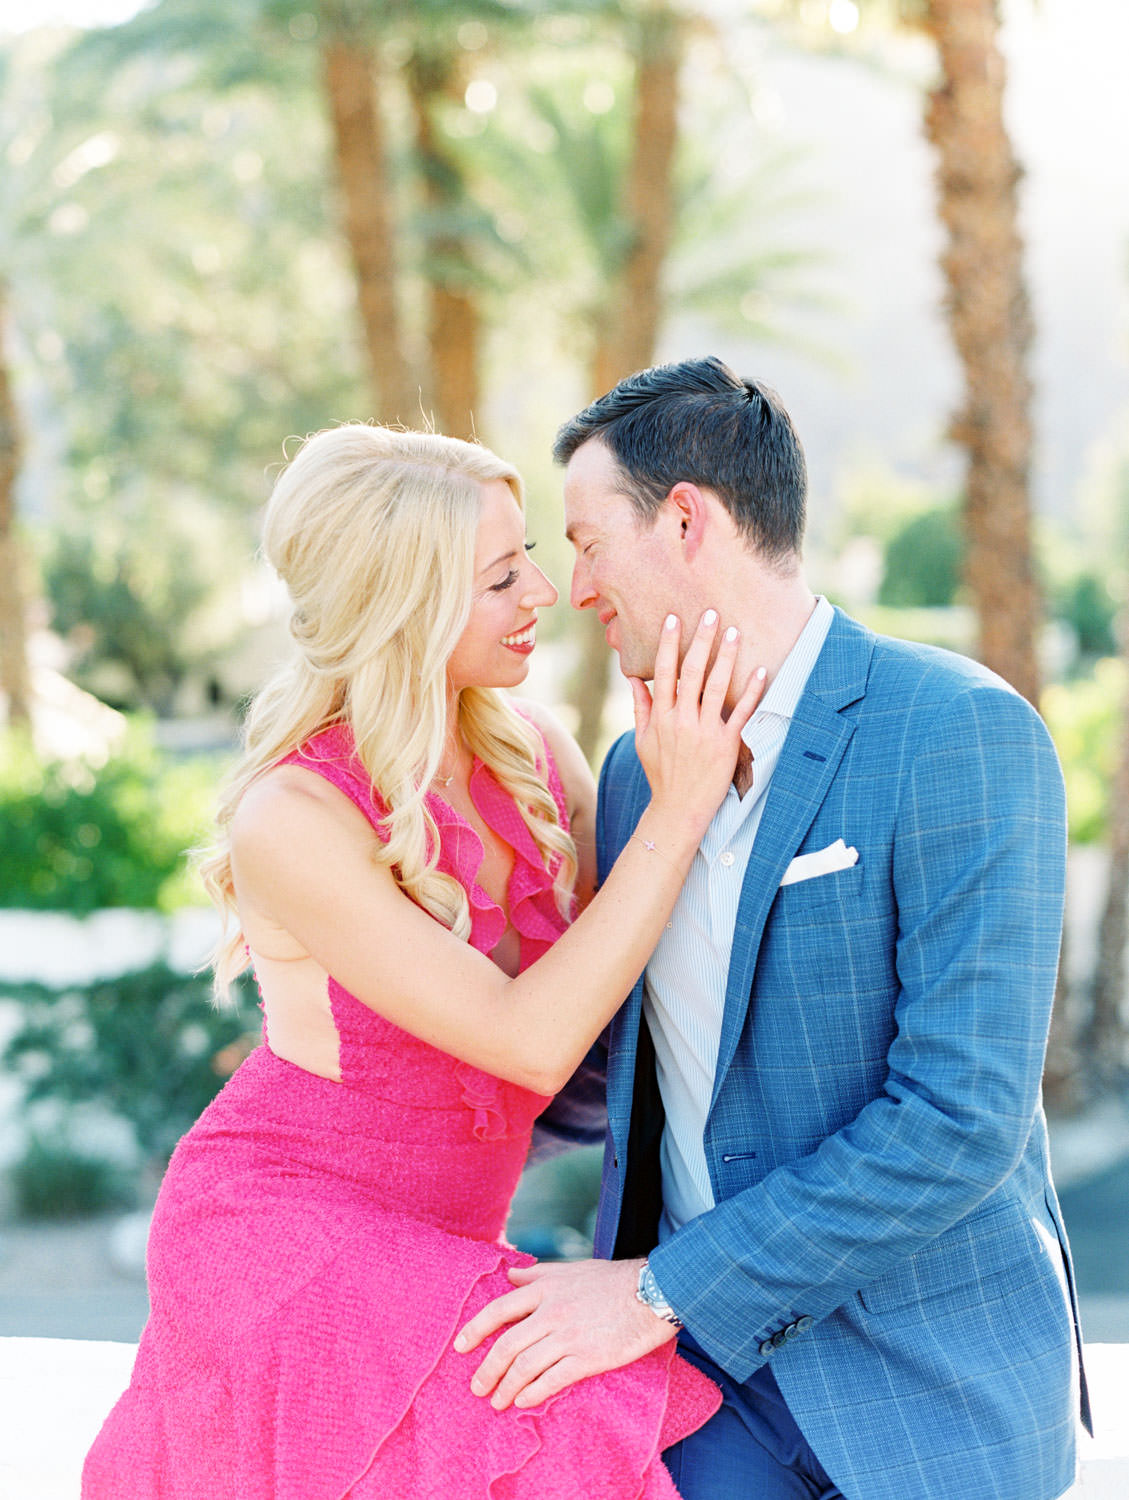 Bride in long pink ruffle dress and groom in blue suit snuggling on a rooftop. La Quinta Resort Engagement Photos on Film by Cavin Elizabeth Photography